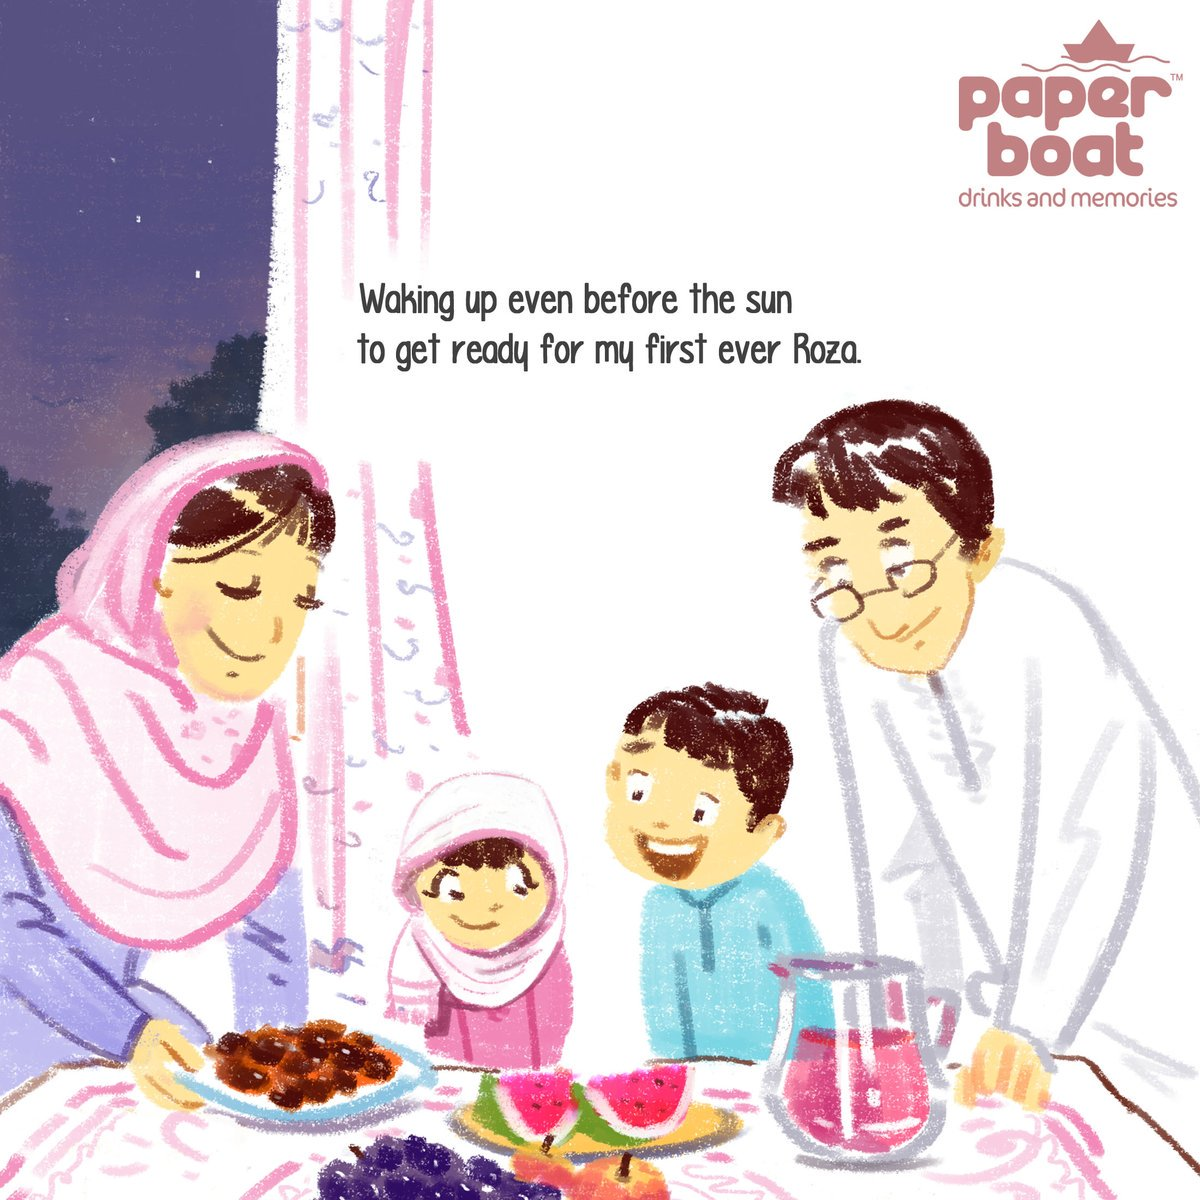 For a long time, haven't since any campaign celebrate #ramzan so beautifully. Wonderful, & thank u @paperboatdrinks! https://t.co/32s43hqZF0